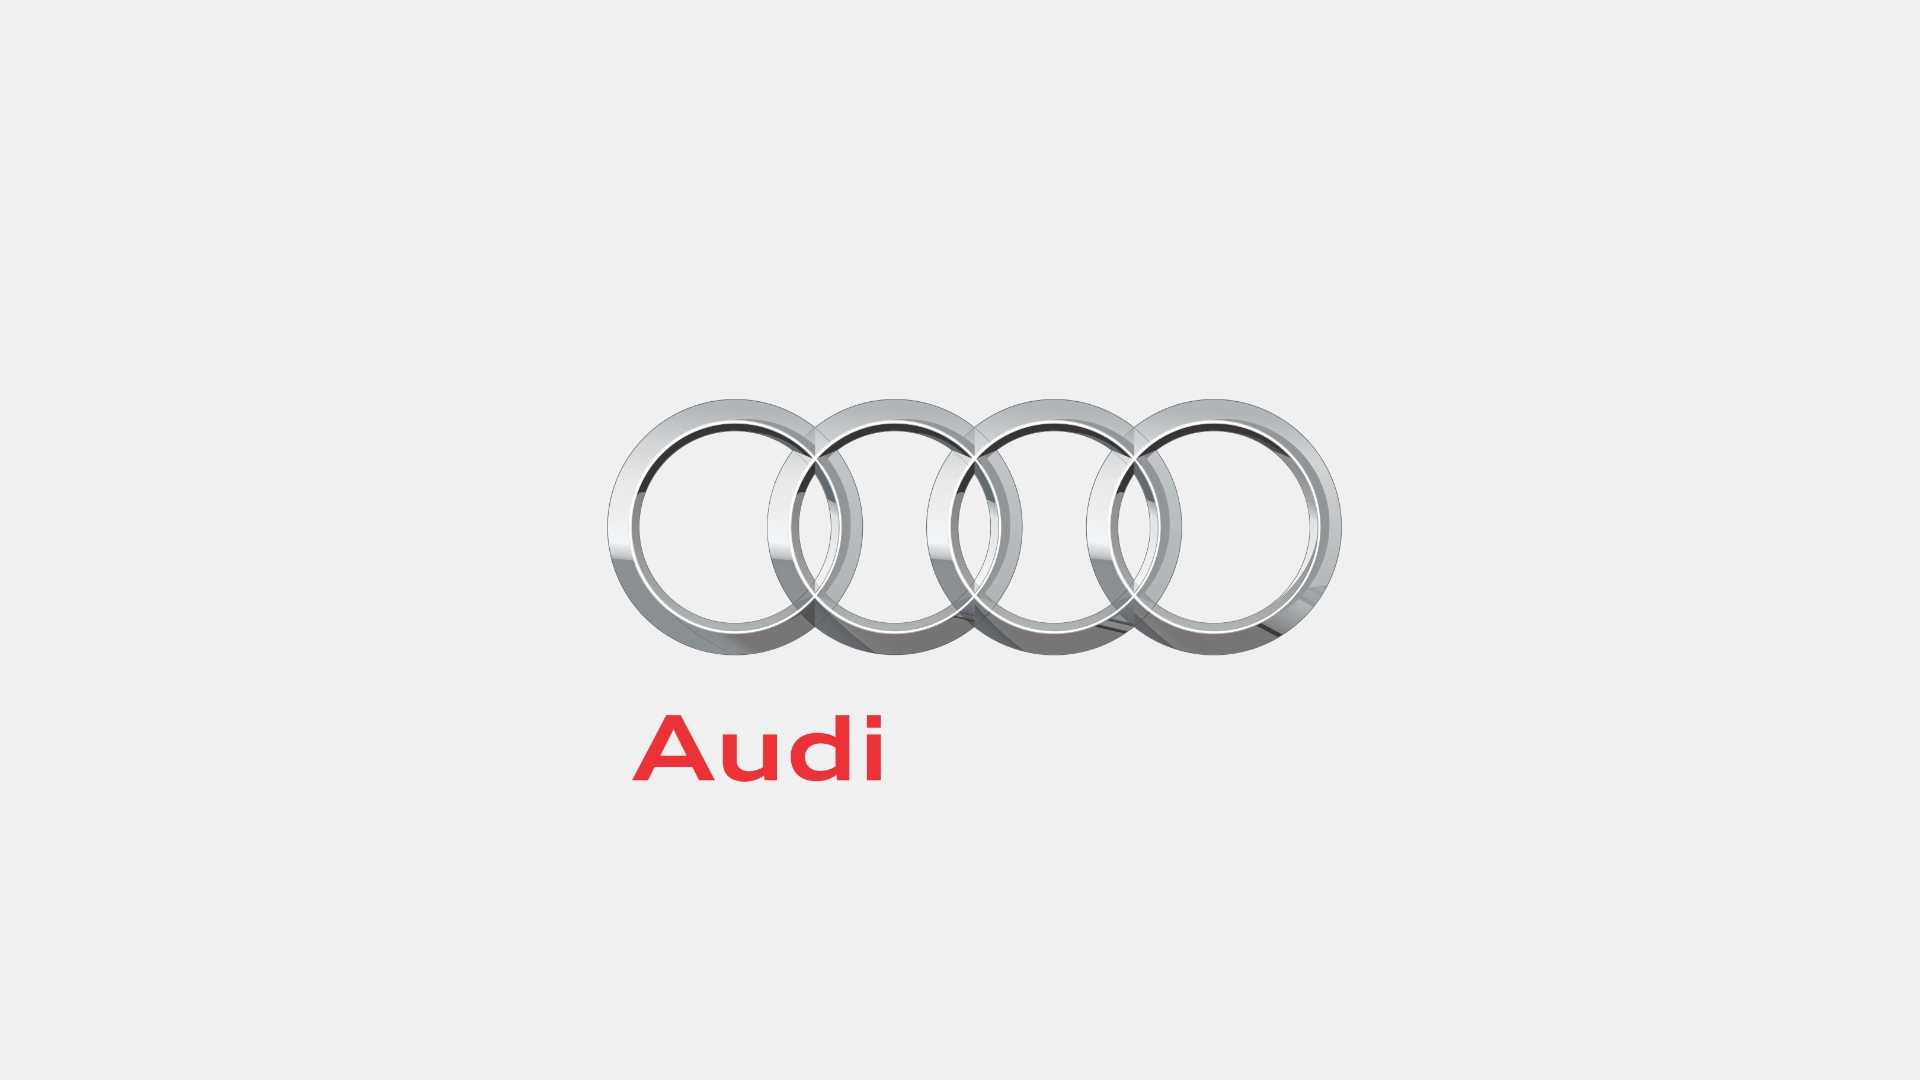 Mobil Hd Wallpaper Audi Logo Wallpapers Pictures Images